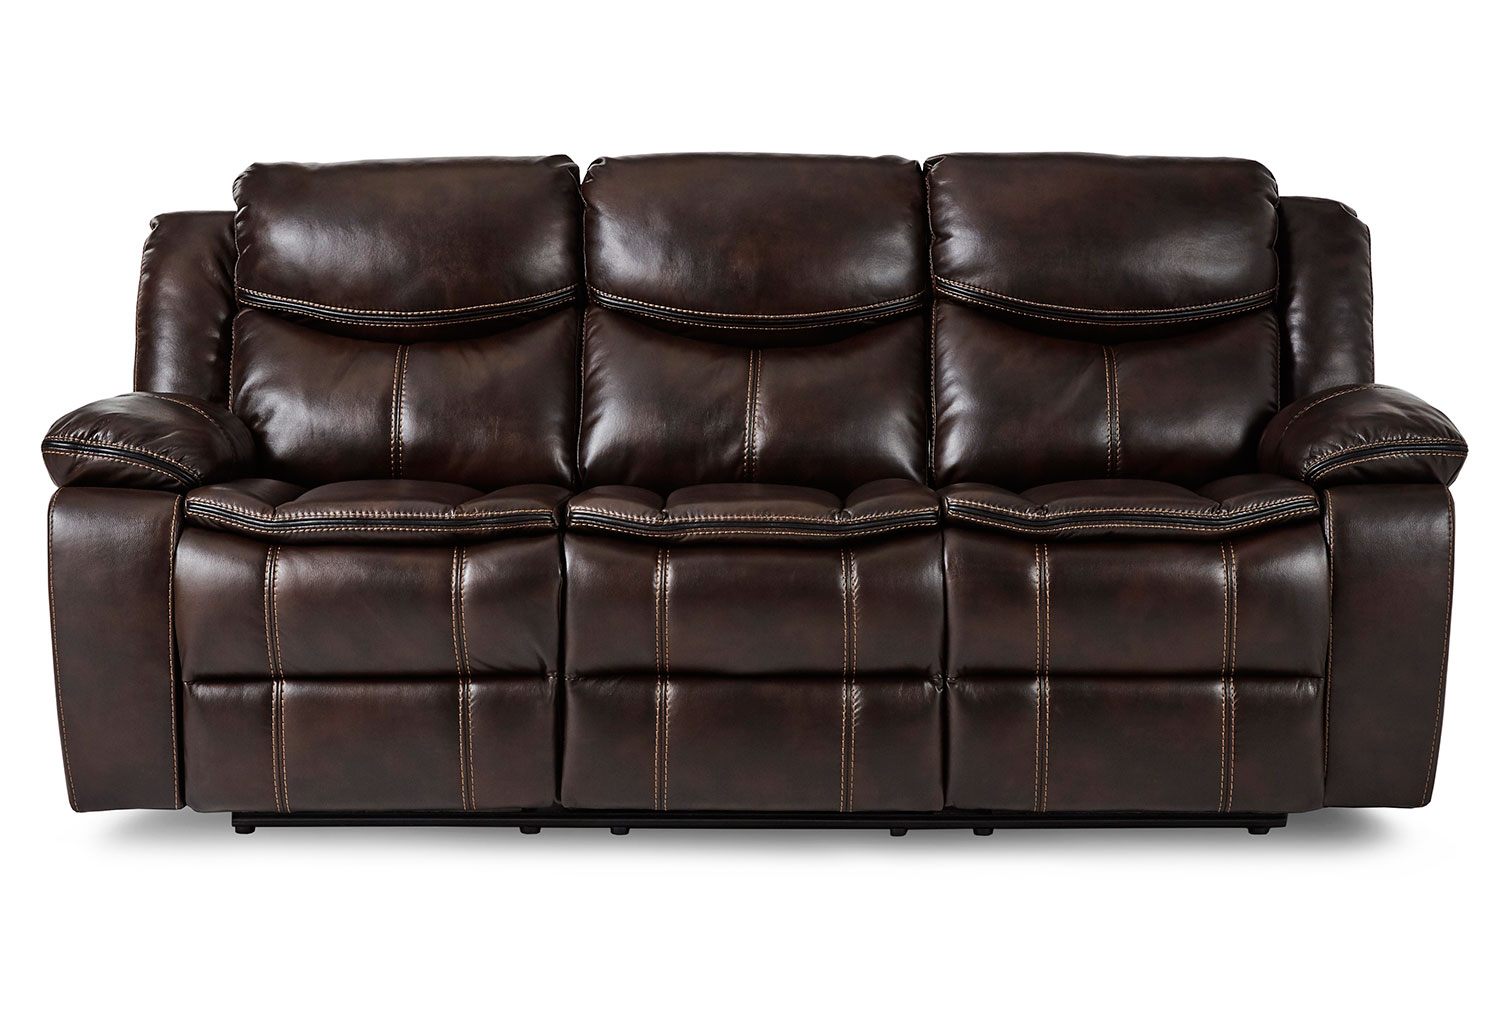 Homelegance Bastrop Double Reclining Sofa - Dark Brown